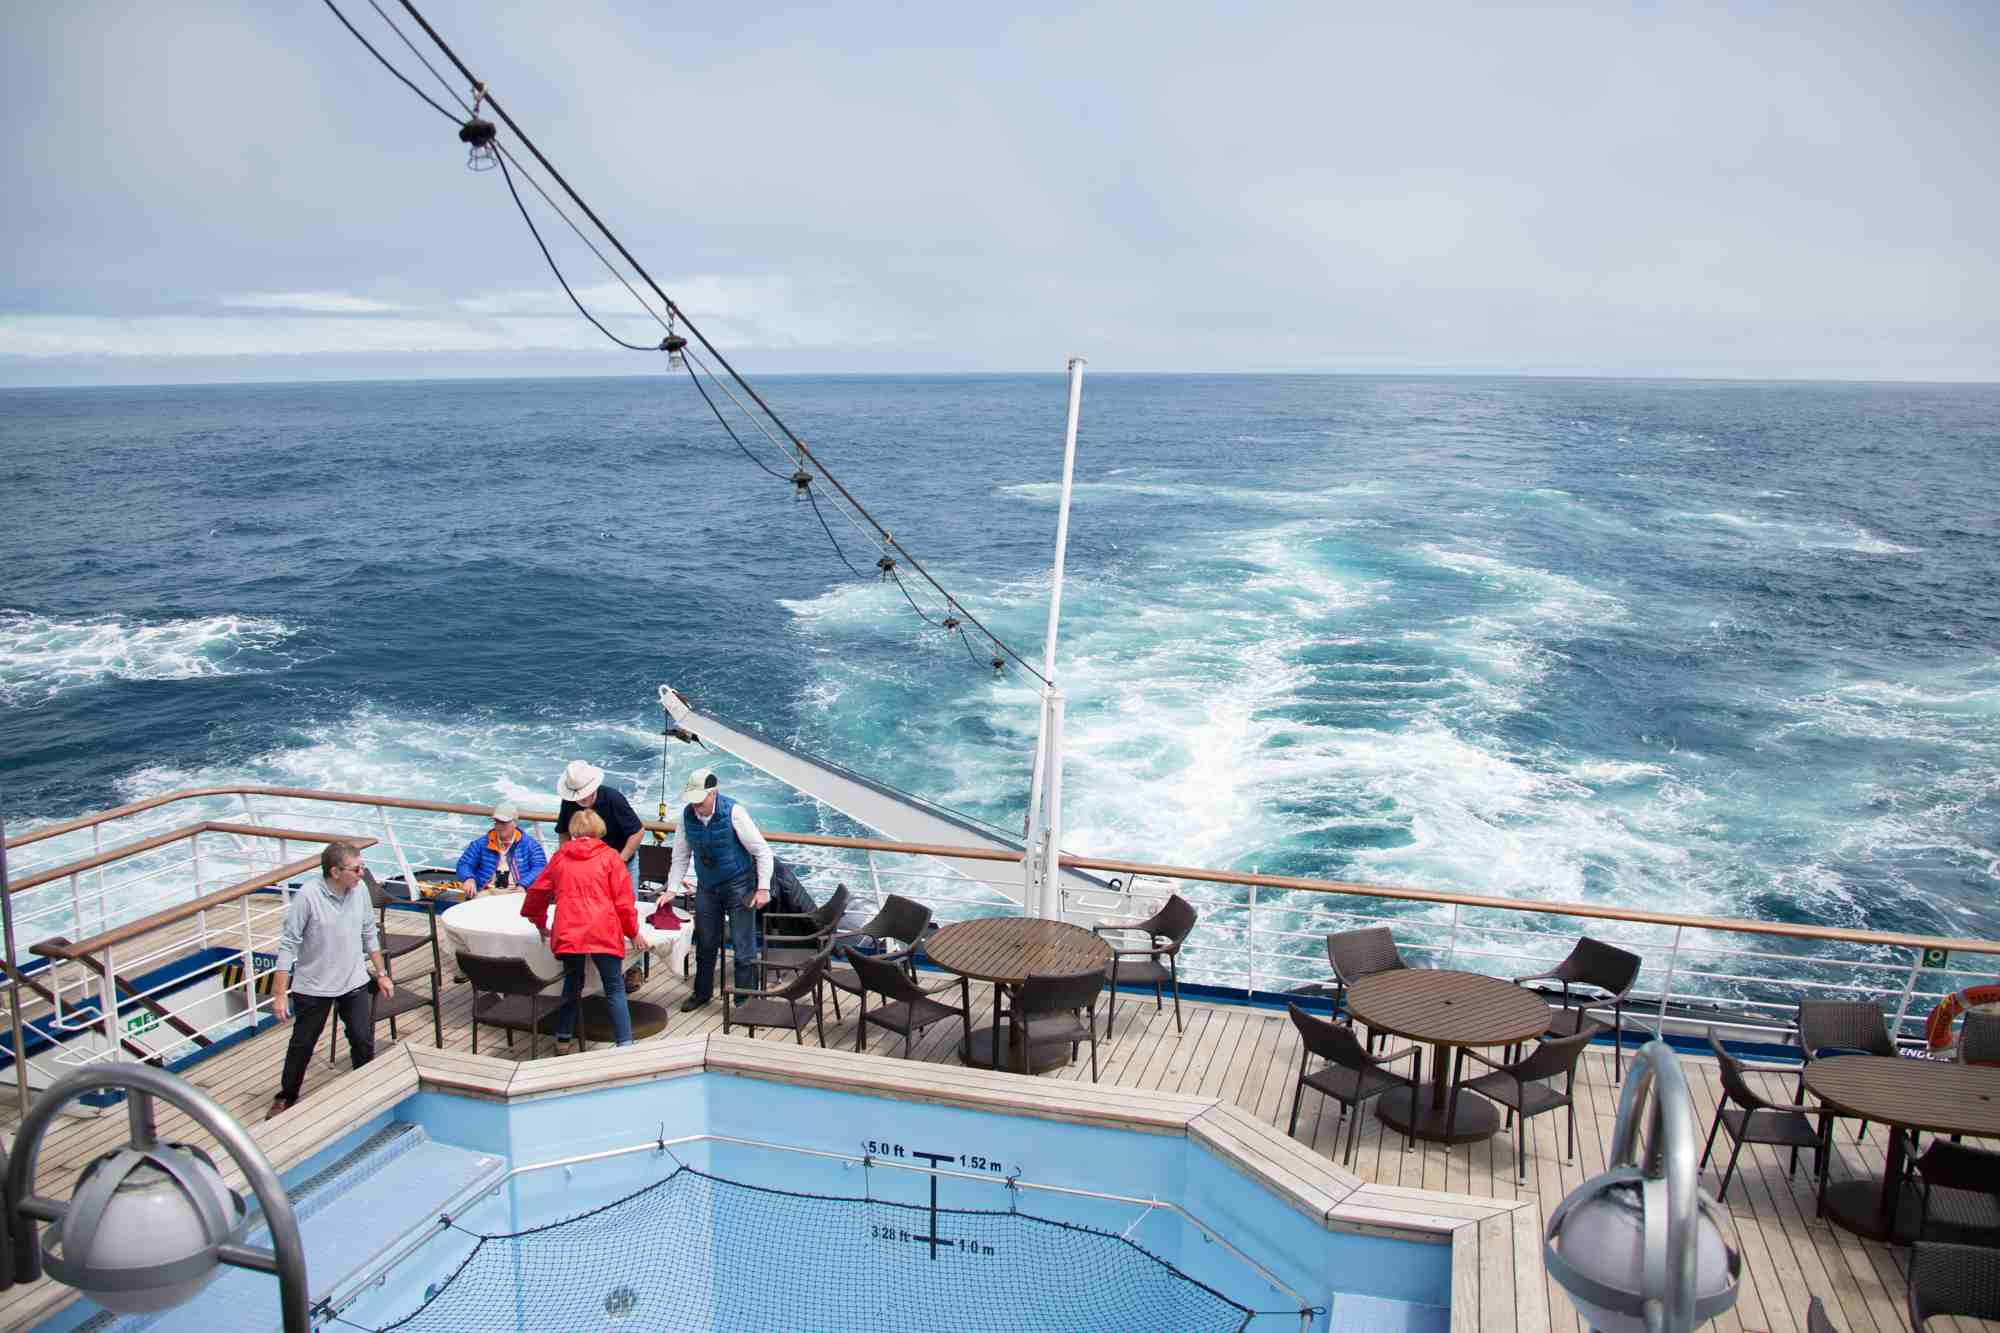 At sea on the Silver Discoverer cruise ship